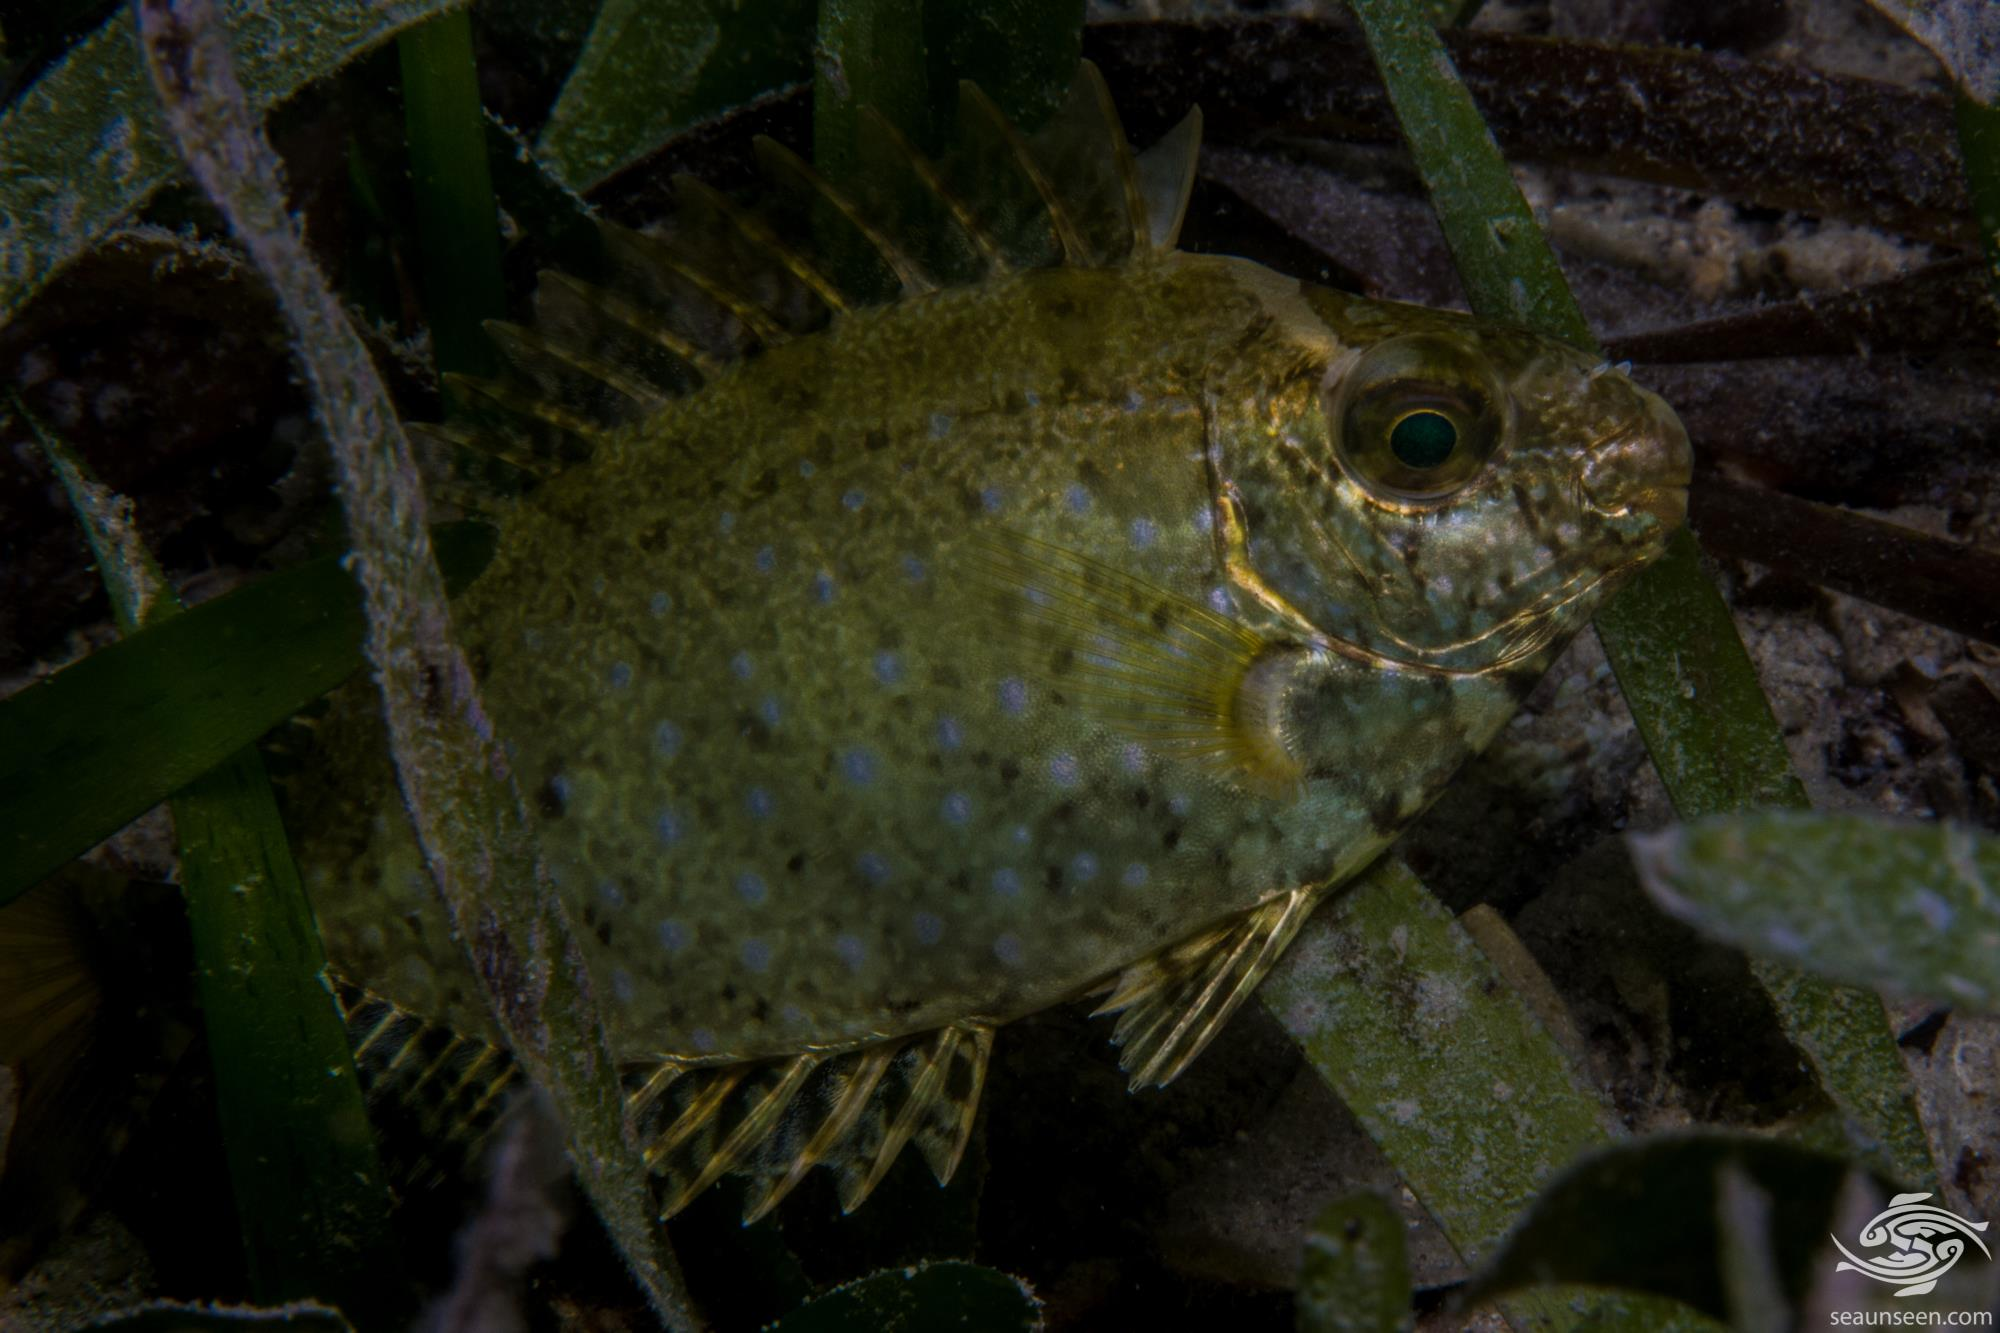 Whitespotted rabbitfish Siganus sutor is also known as the Shoemaker spinefoot